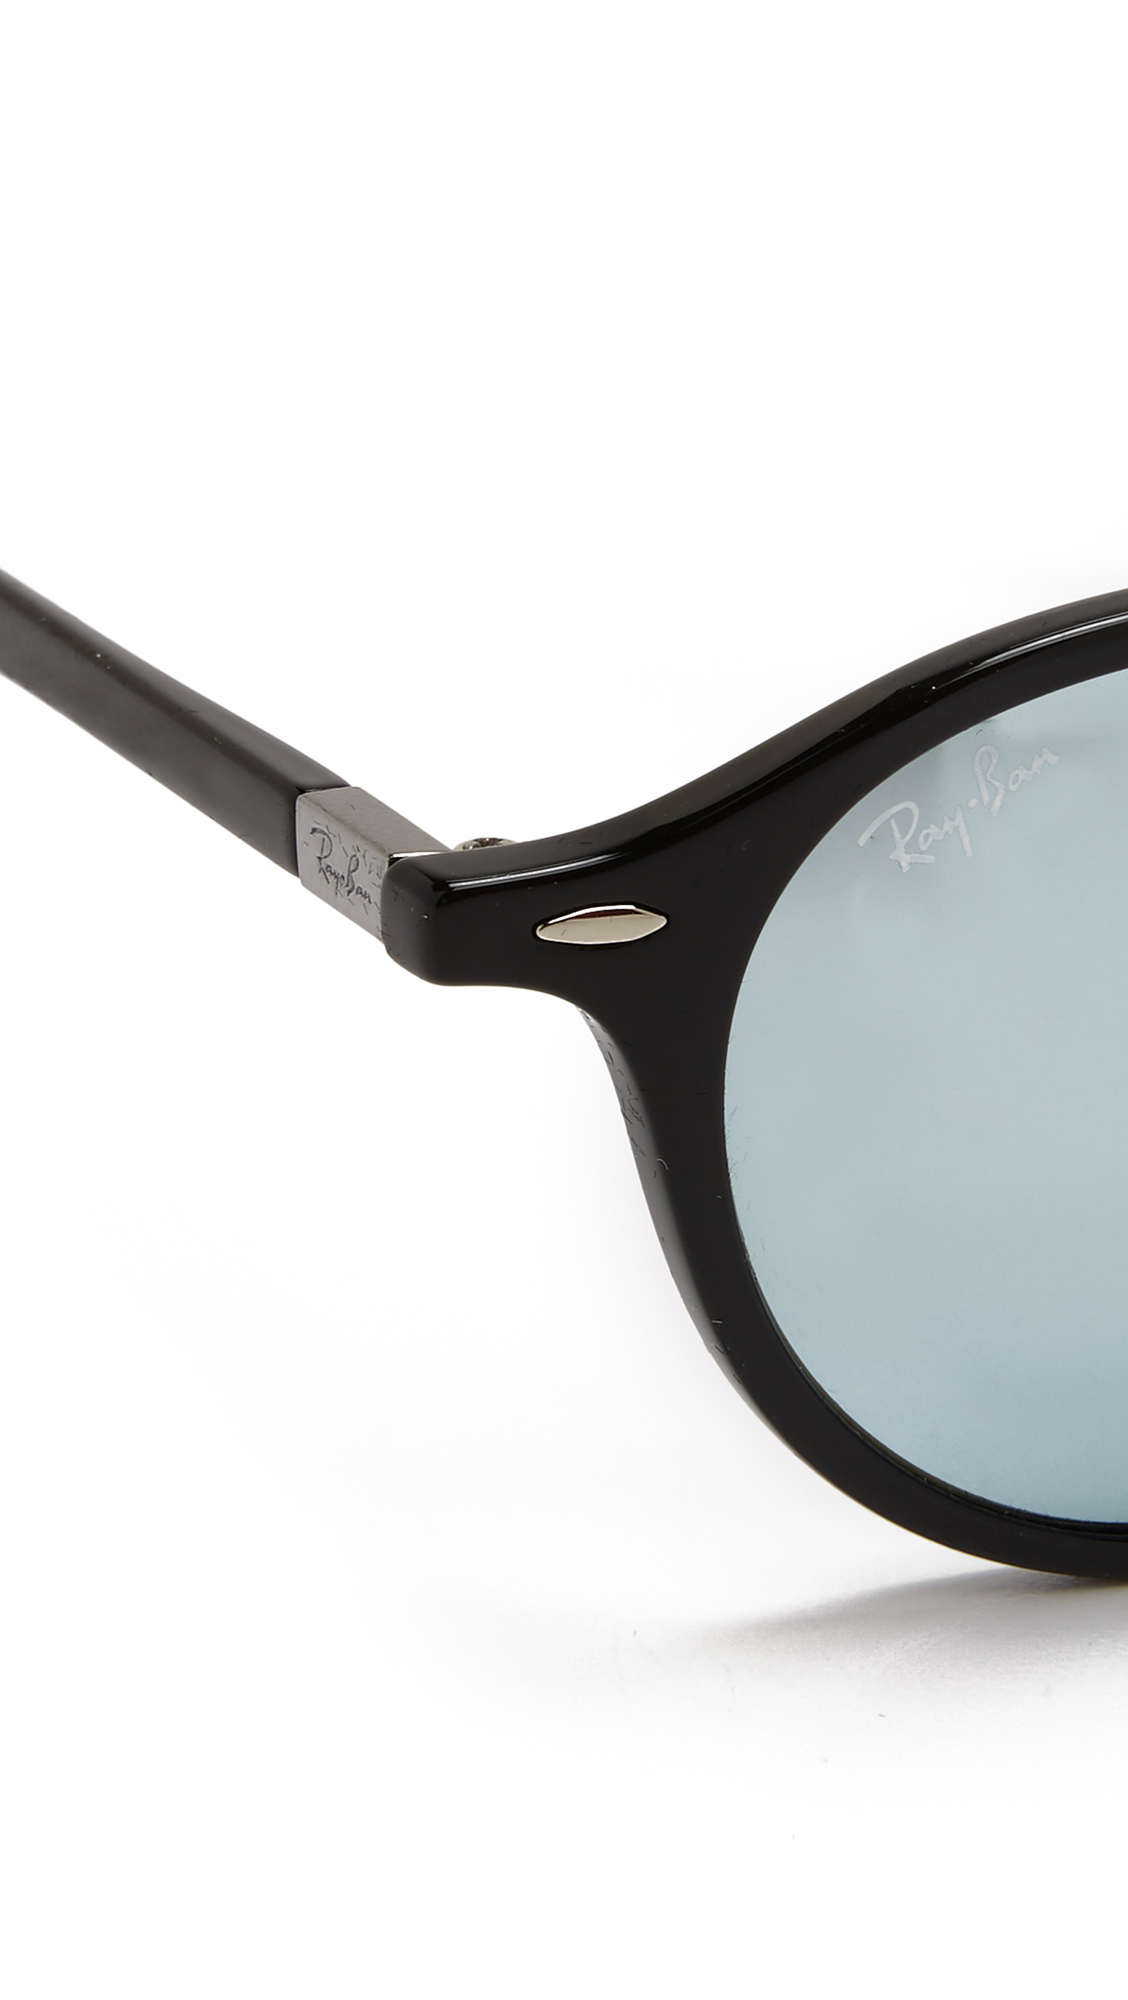 81dcf12cdf Ray Ban Round Black And Silver